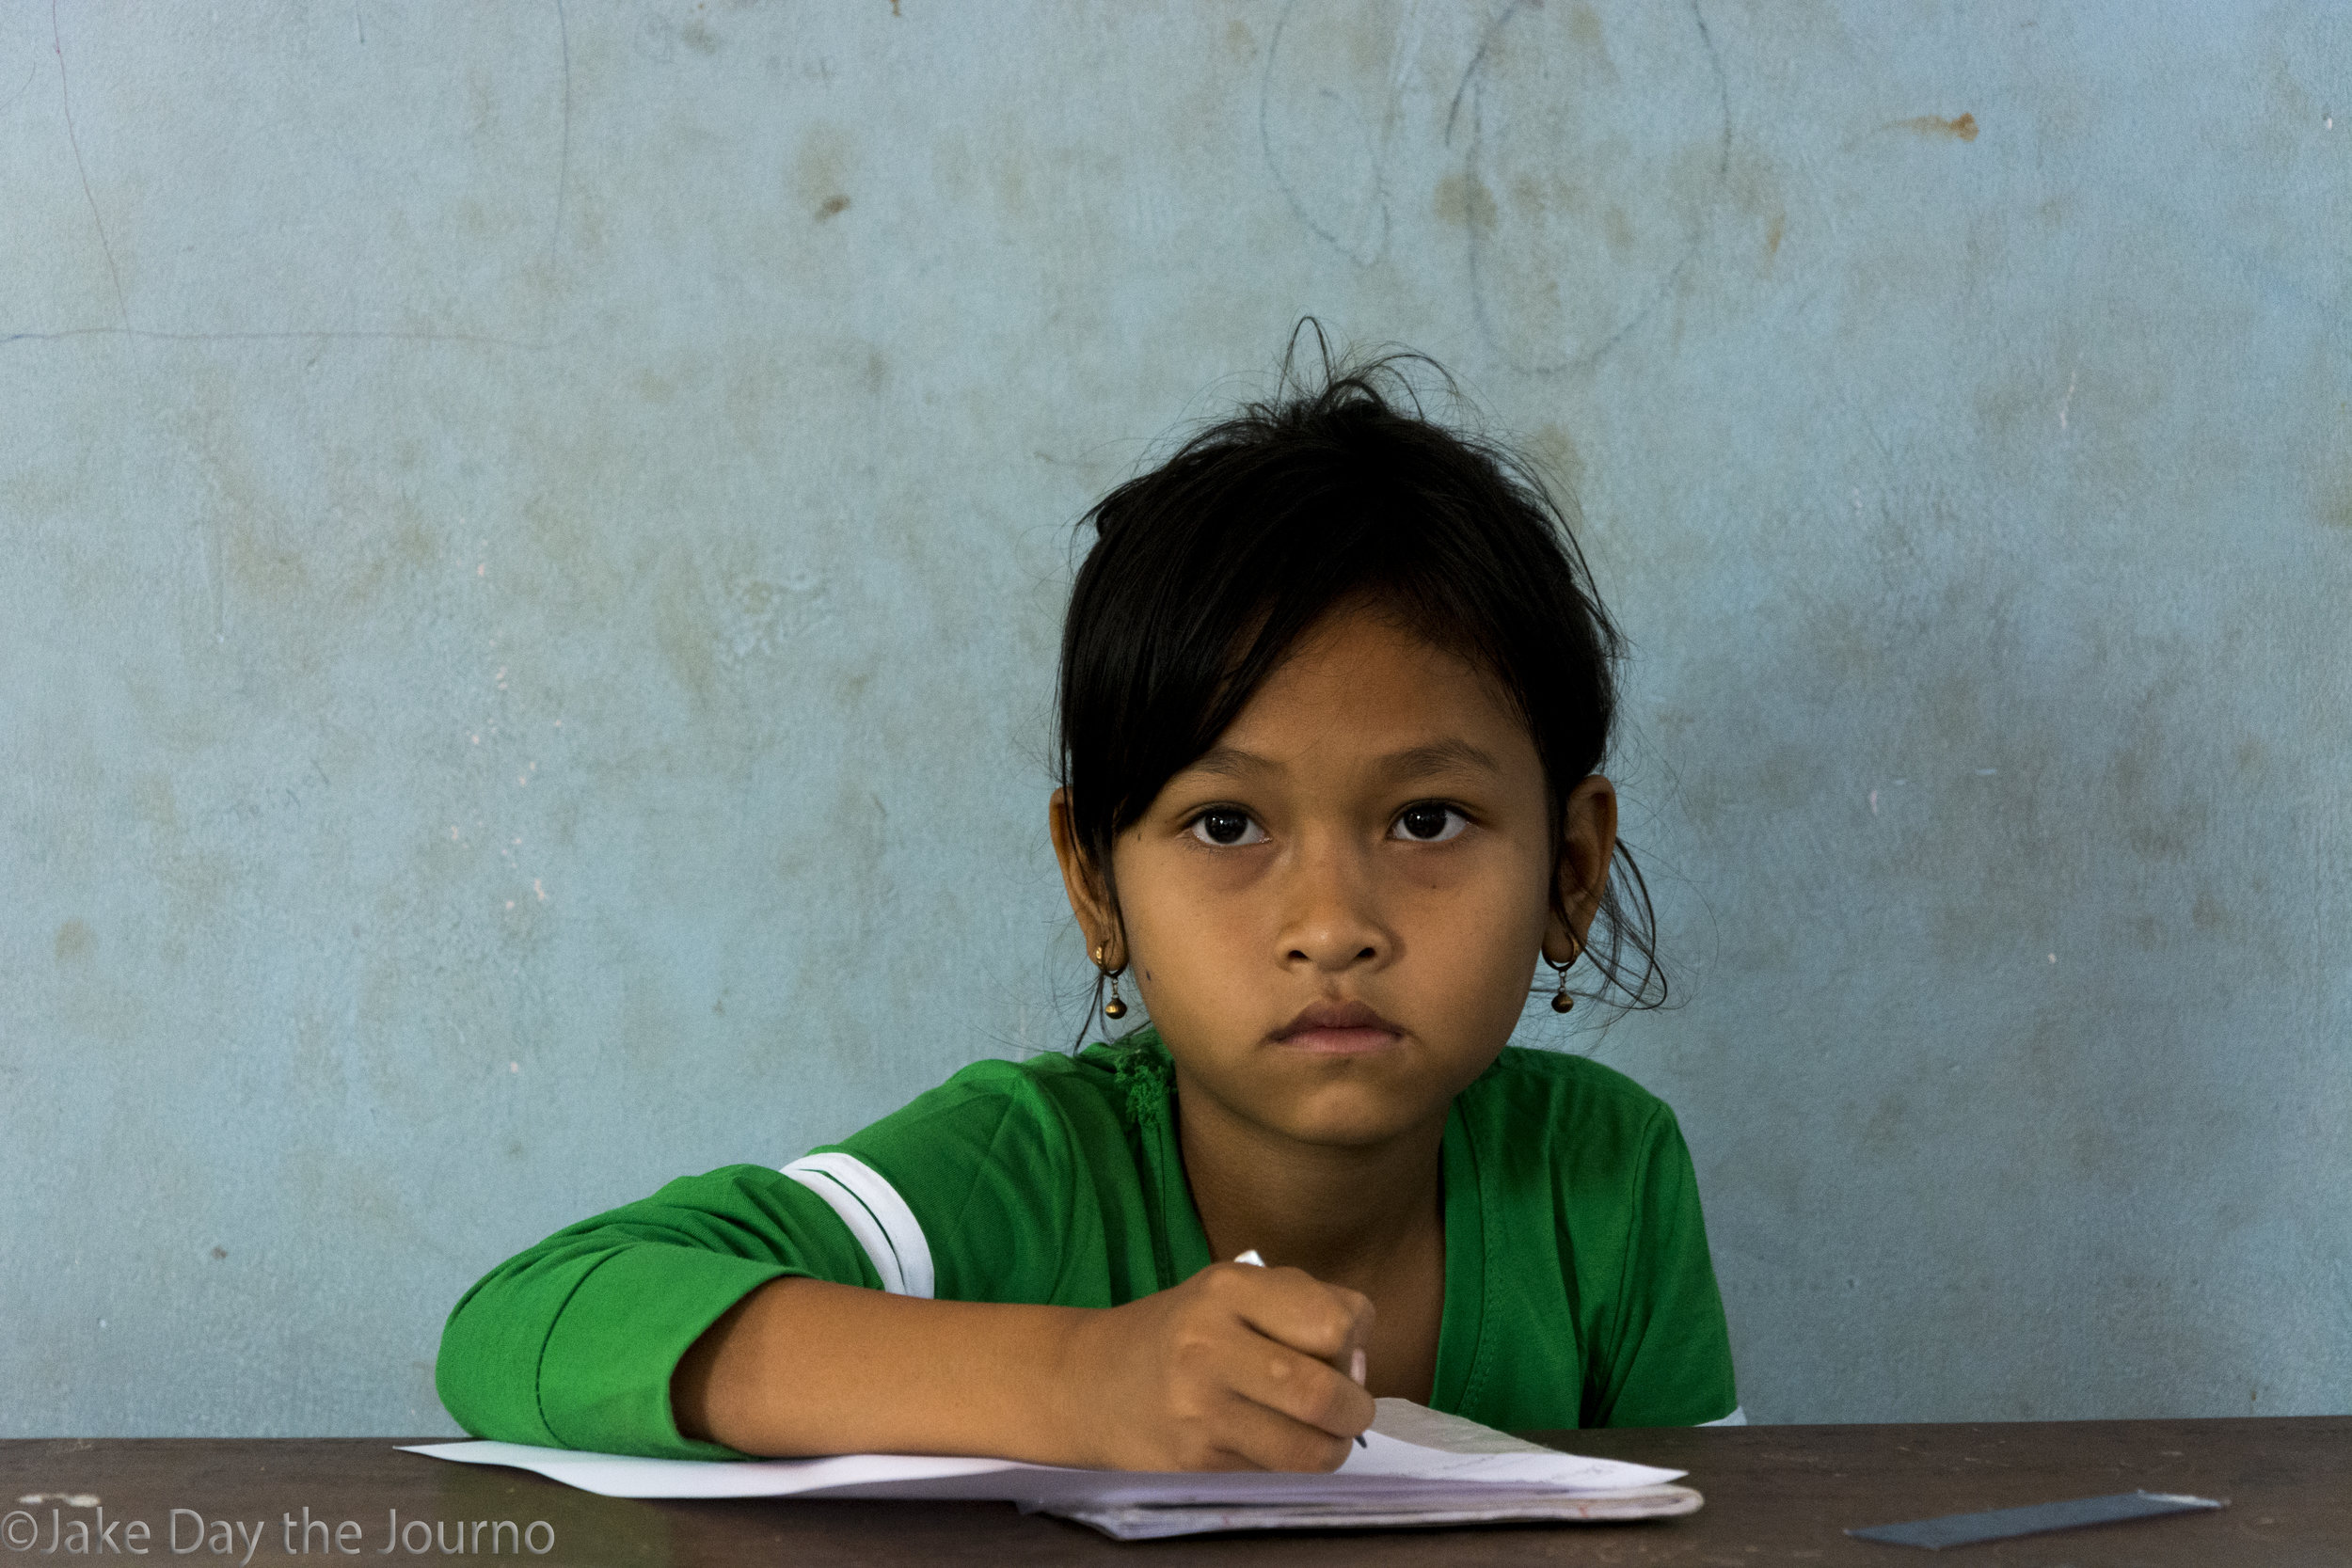 Vann Ta listens attentively during English class at Savong's School, Don Teav Village, on 25/01/18 by Jake Day. Savong's School is a small school with run-down facilities due to a lack of funding. There are only two classrooms, one computer room, a library, a teacher's lounge, and a field where the children play soccer.